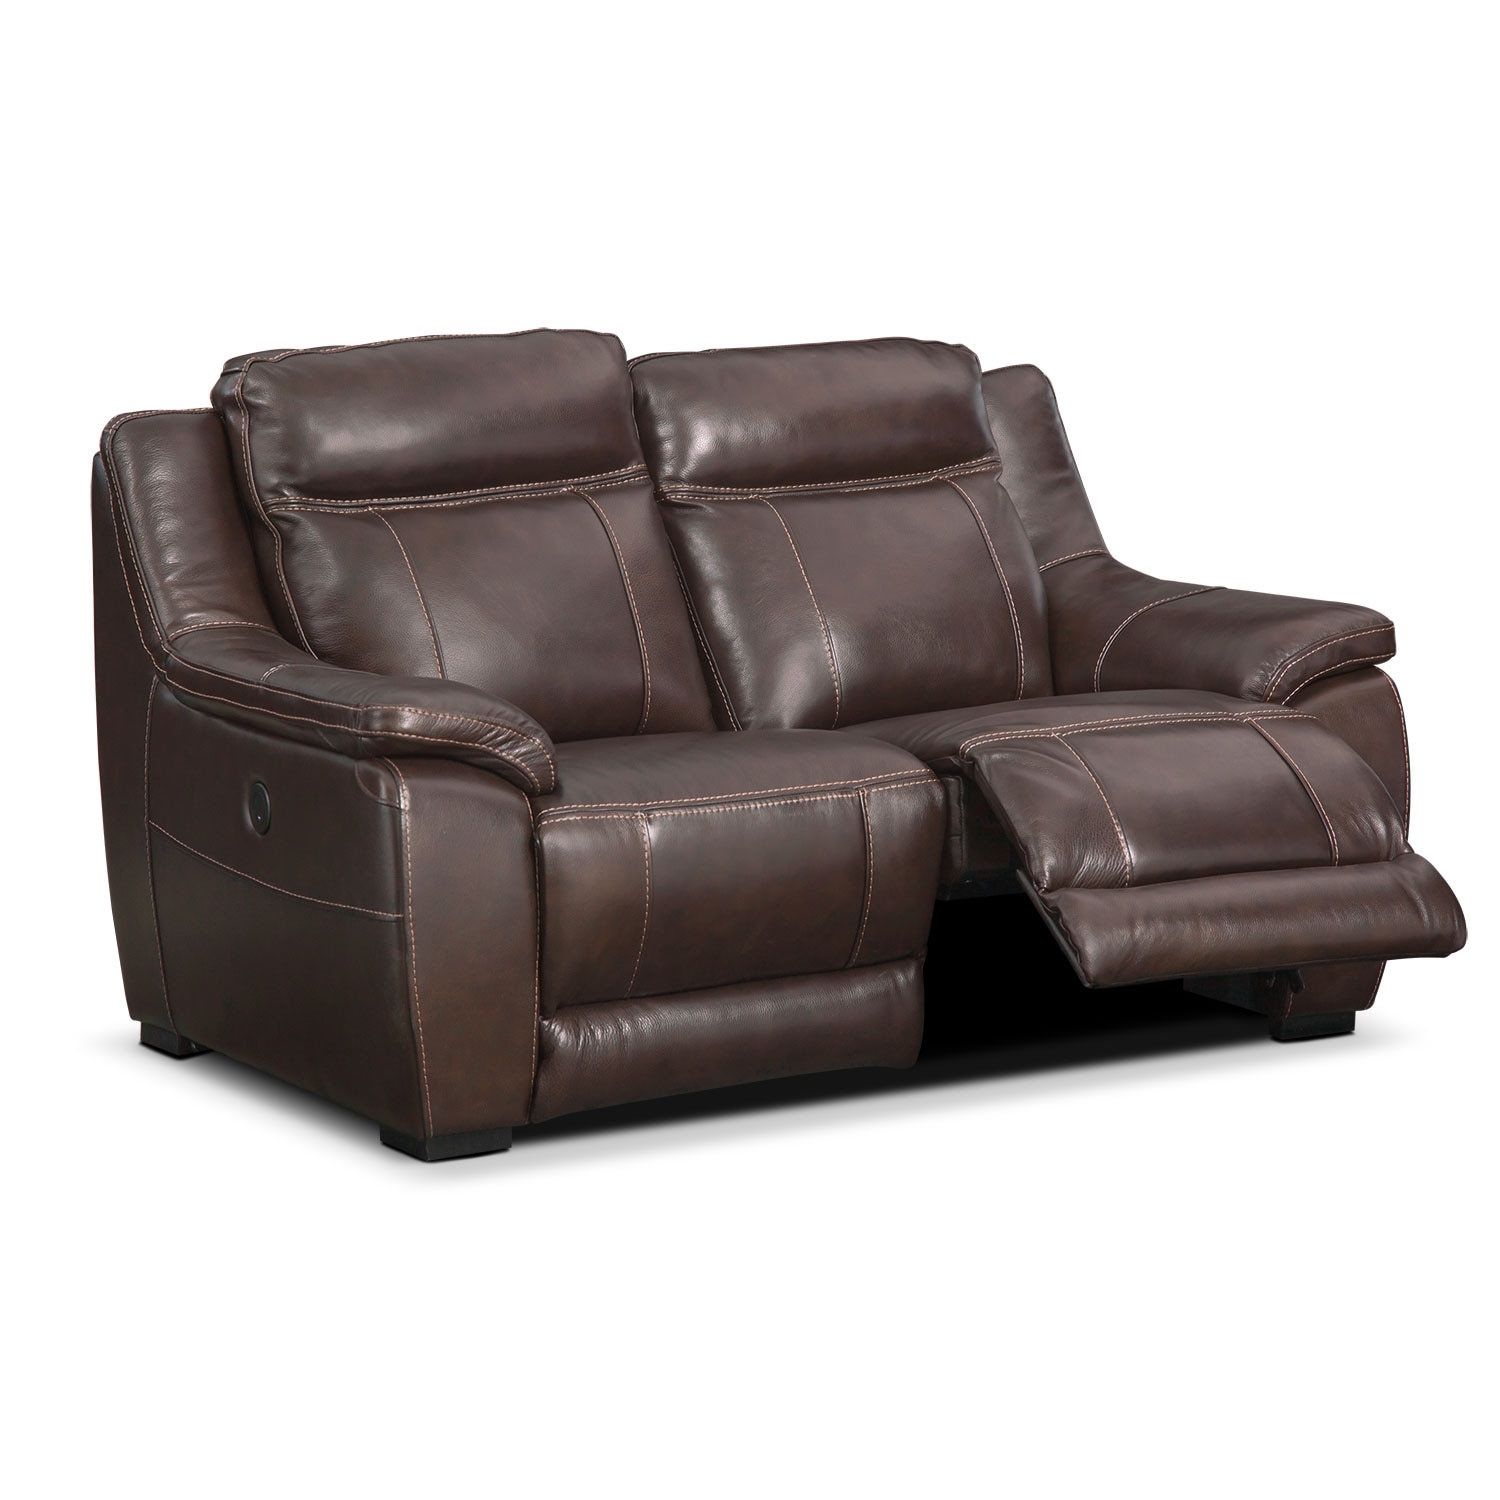 Lido Power Reclining Loveseat Brown Value City Furniture